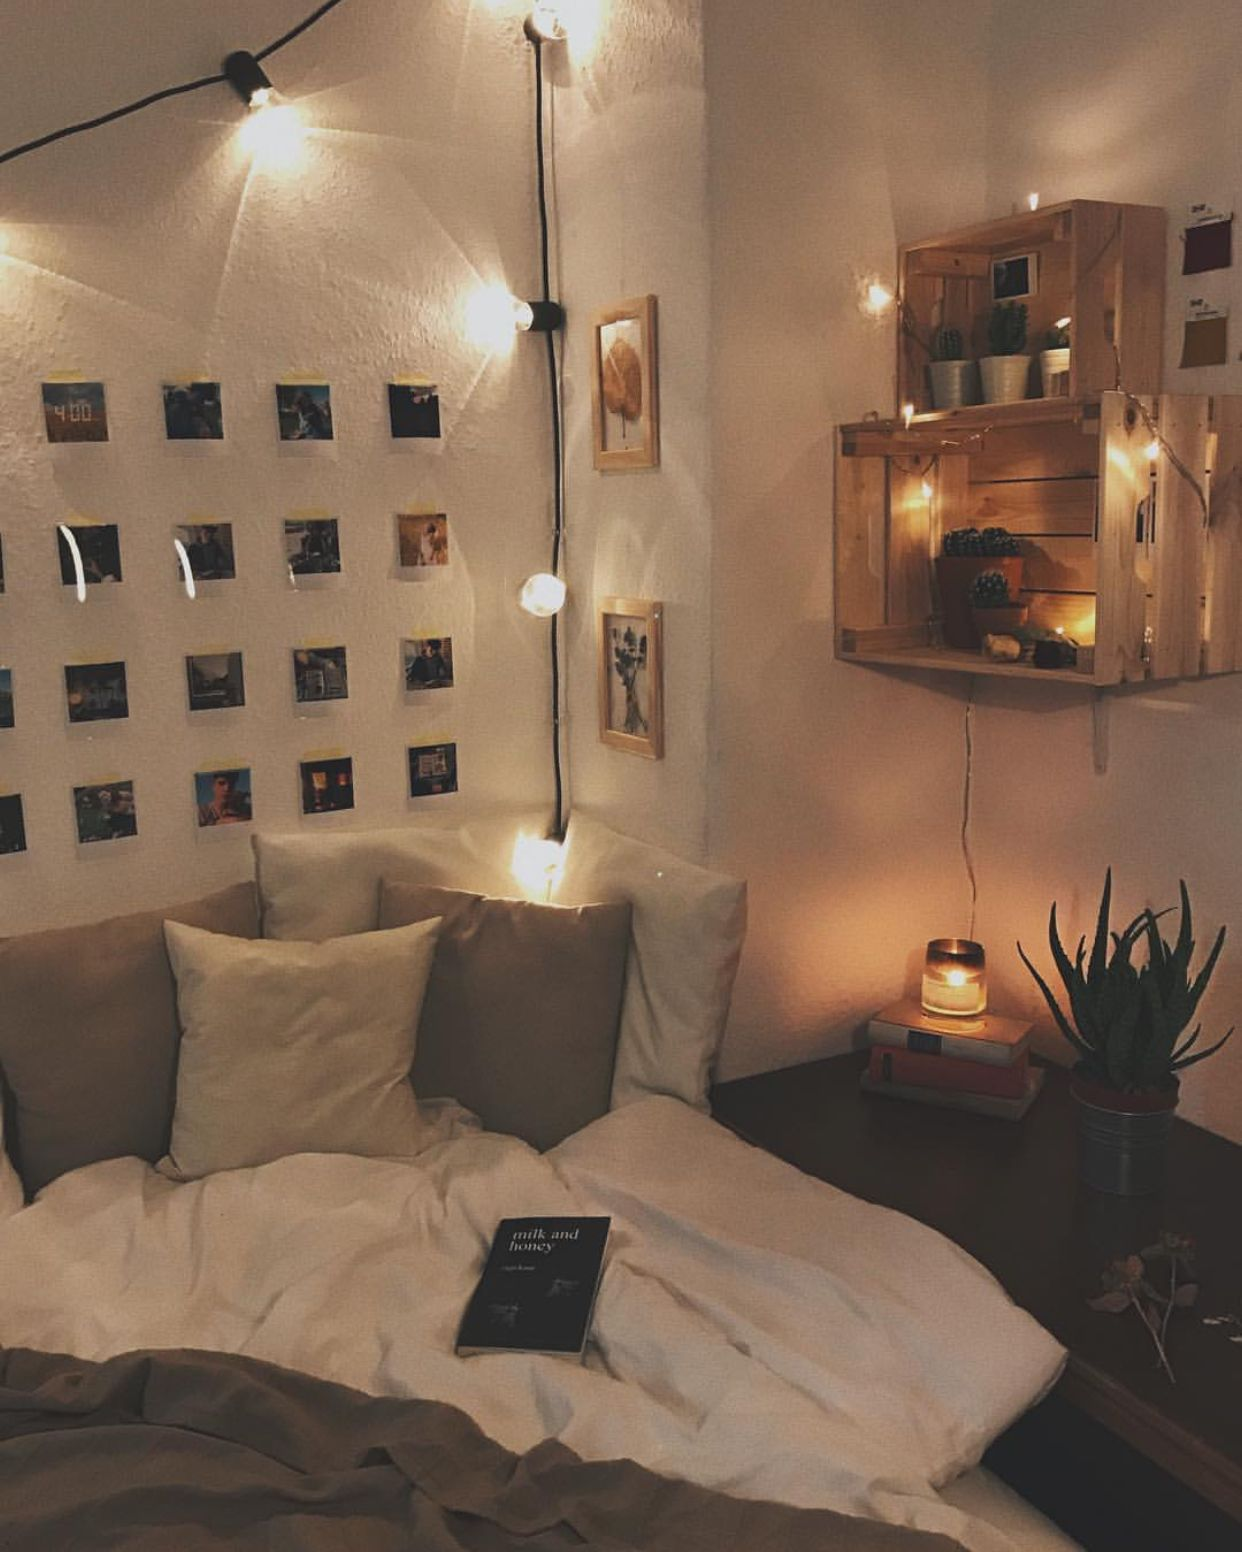 Bedroom Decor Tumblr Ideas To Decor Bedroom Bedroom Decor Design Images How To Boho Bedroom Decor 70s Bedroom Decor Bedr In 2020 Wohnung Wohnen Zimmer Einrichten